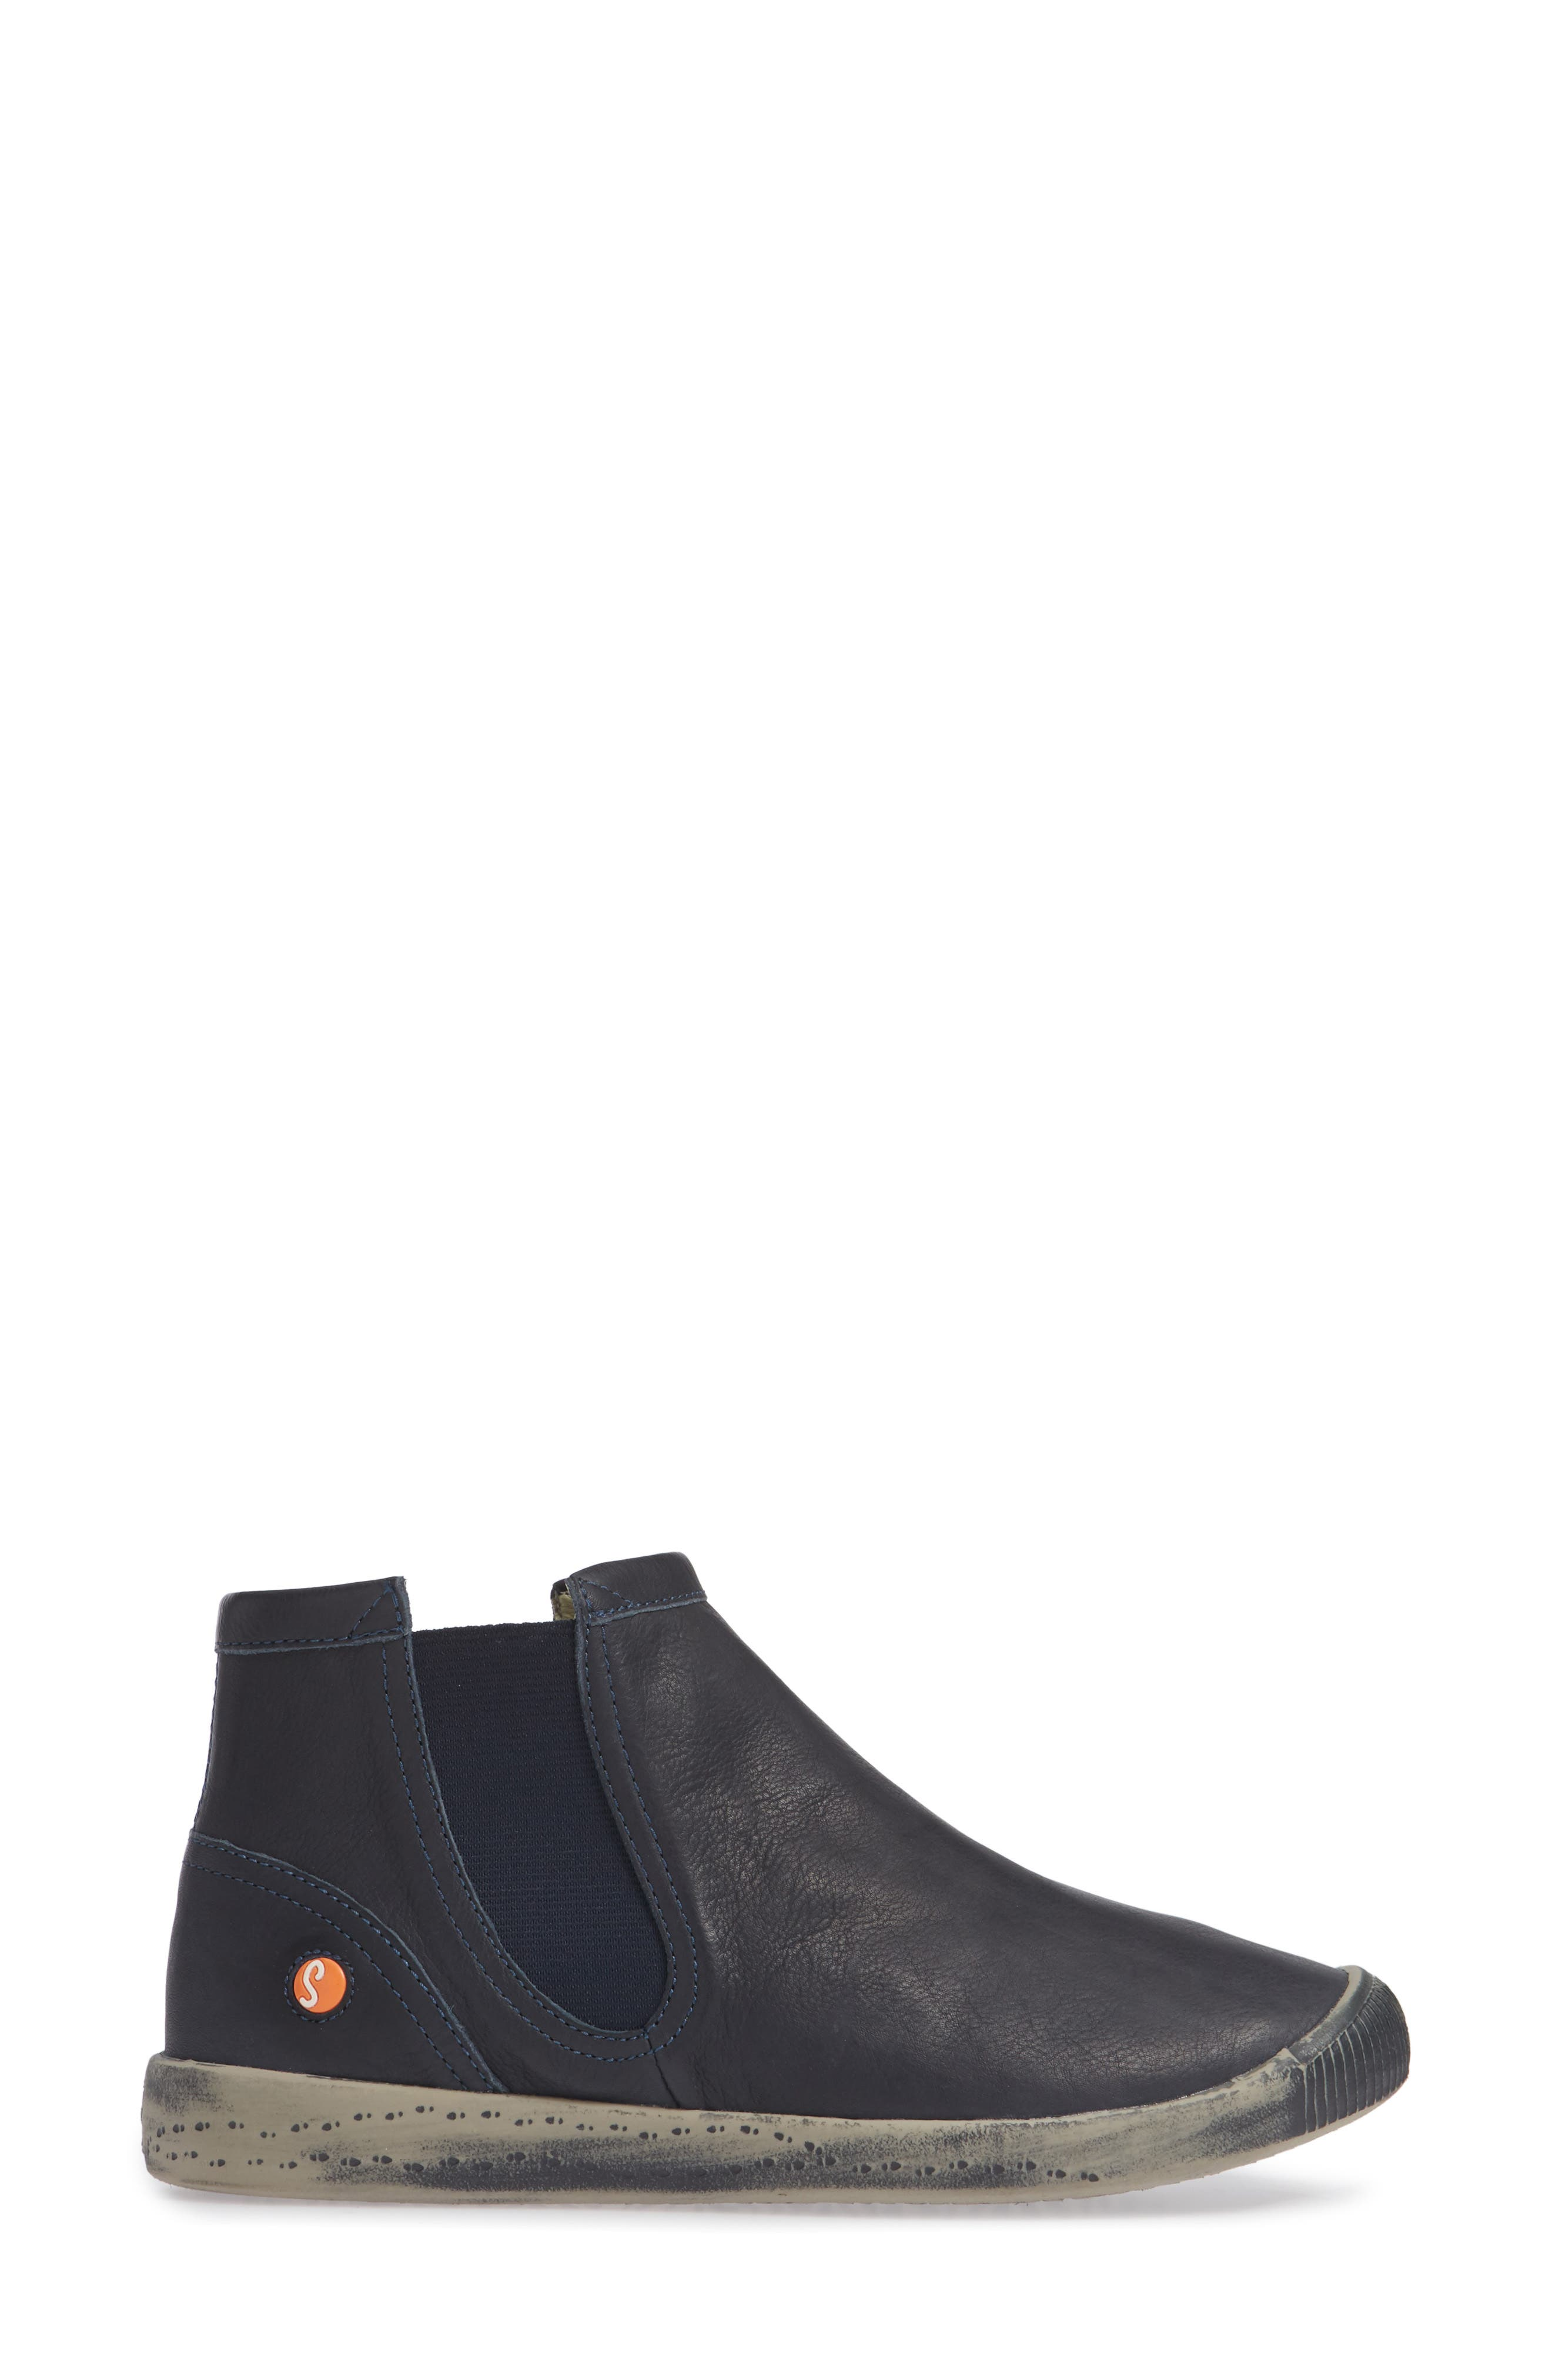 SOFTINOS BY FLY LONDON,                             Ici Sneaker,                             Alternate thumbnail 3, color,                             NAVY SMOOTH LEATHER